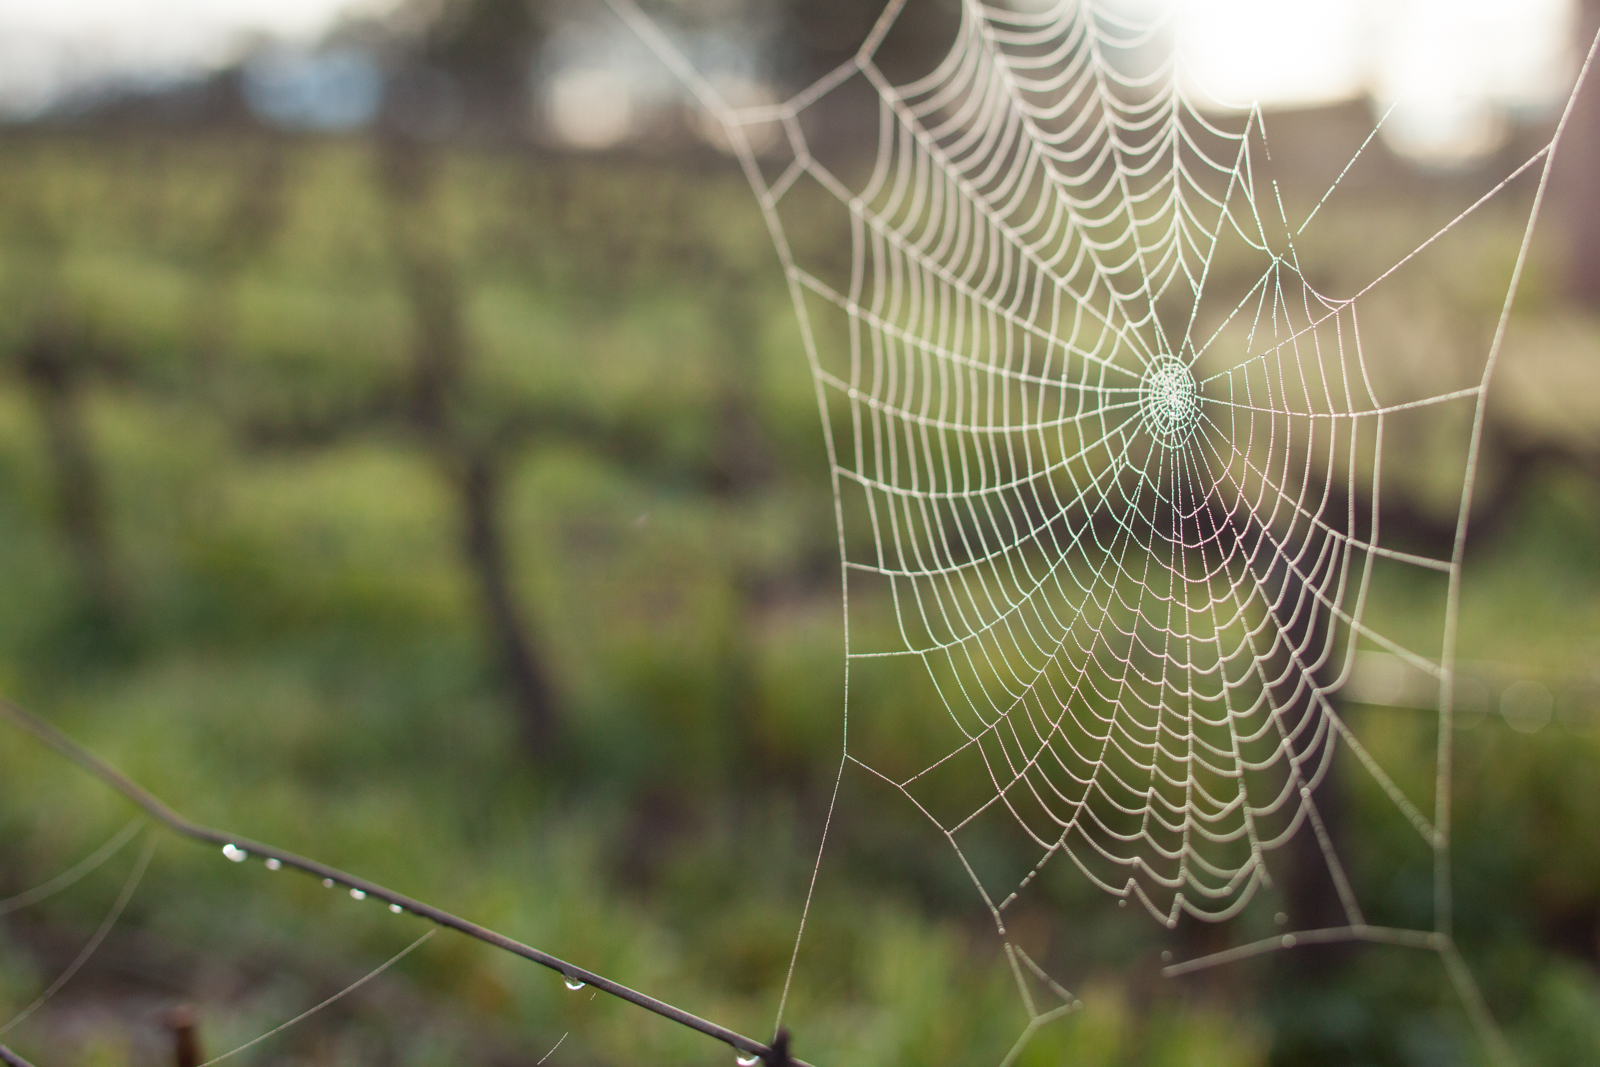 A spider web in a cabernet sauvignon vineyard in Napa Valley, California. ©Kevin Day/Opening a Bottle.